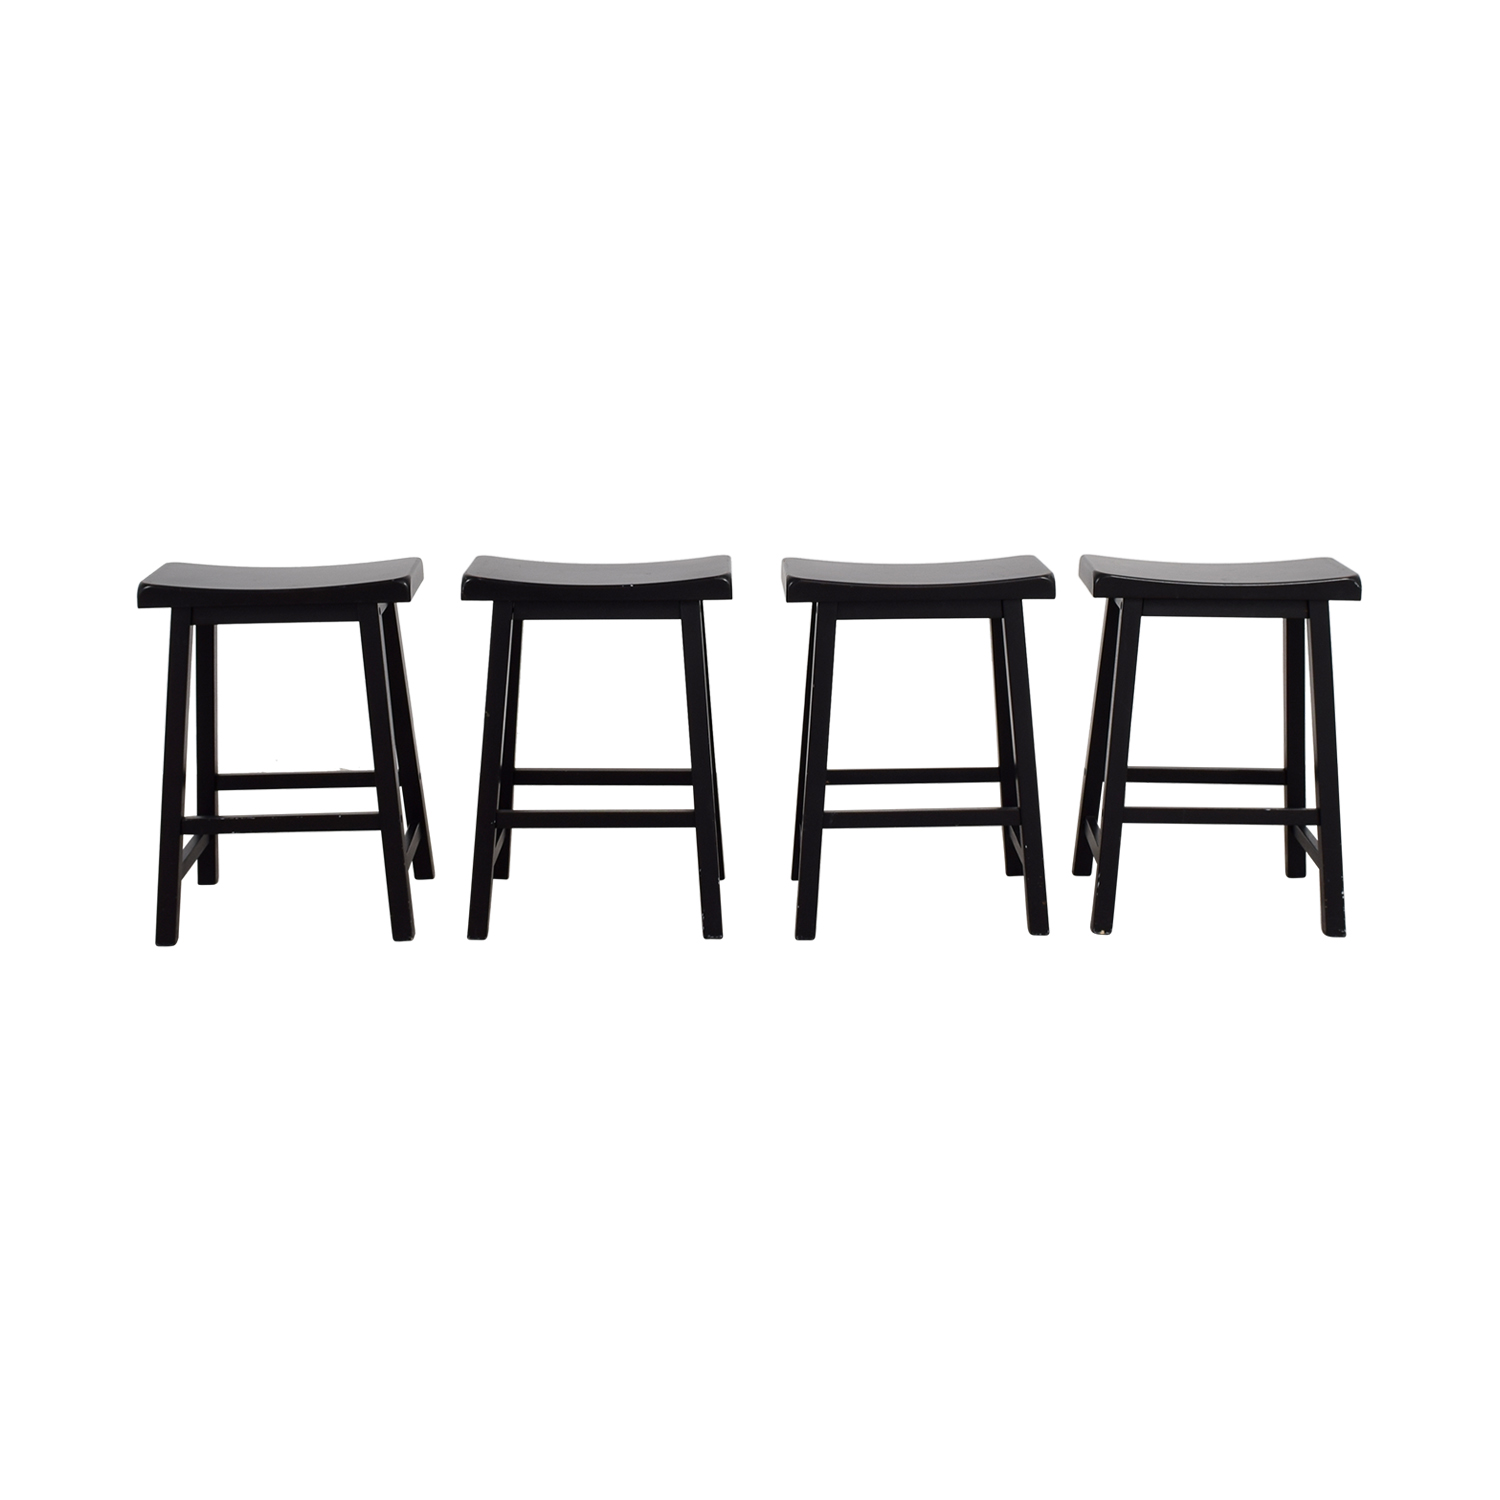 Peachy 90 Off Rectangular Wood Bar Stools Chairs Ncnpc Chair Design For Home Ncnpcorg